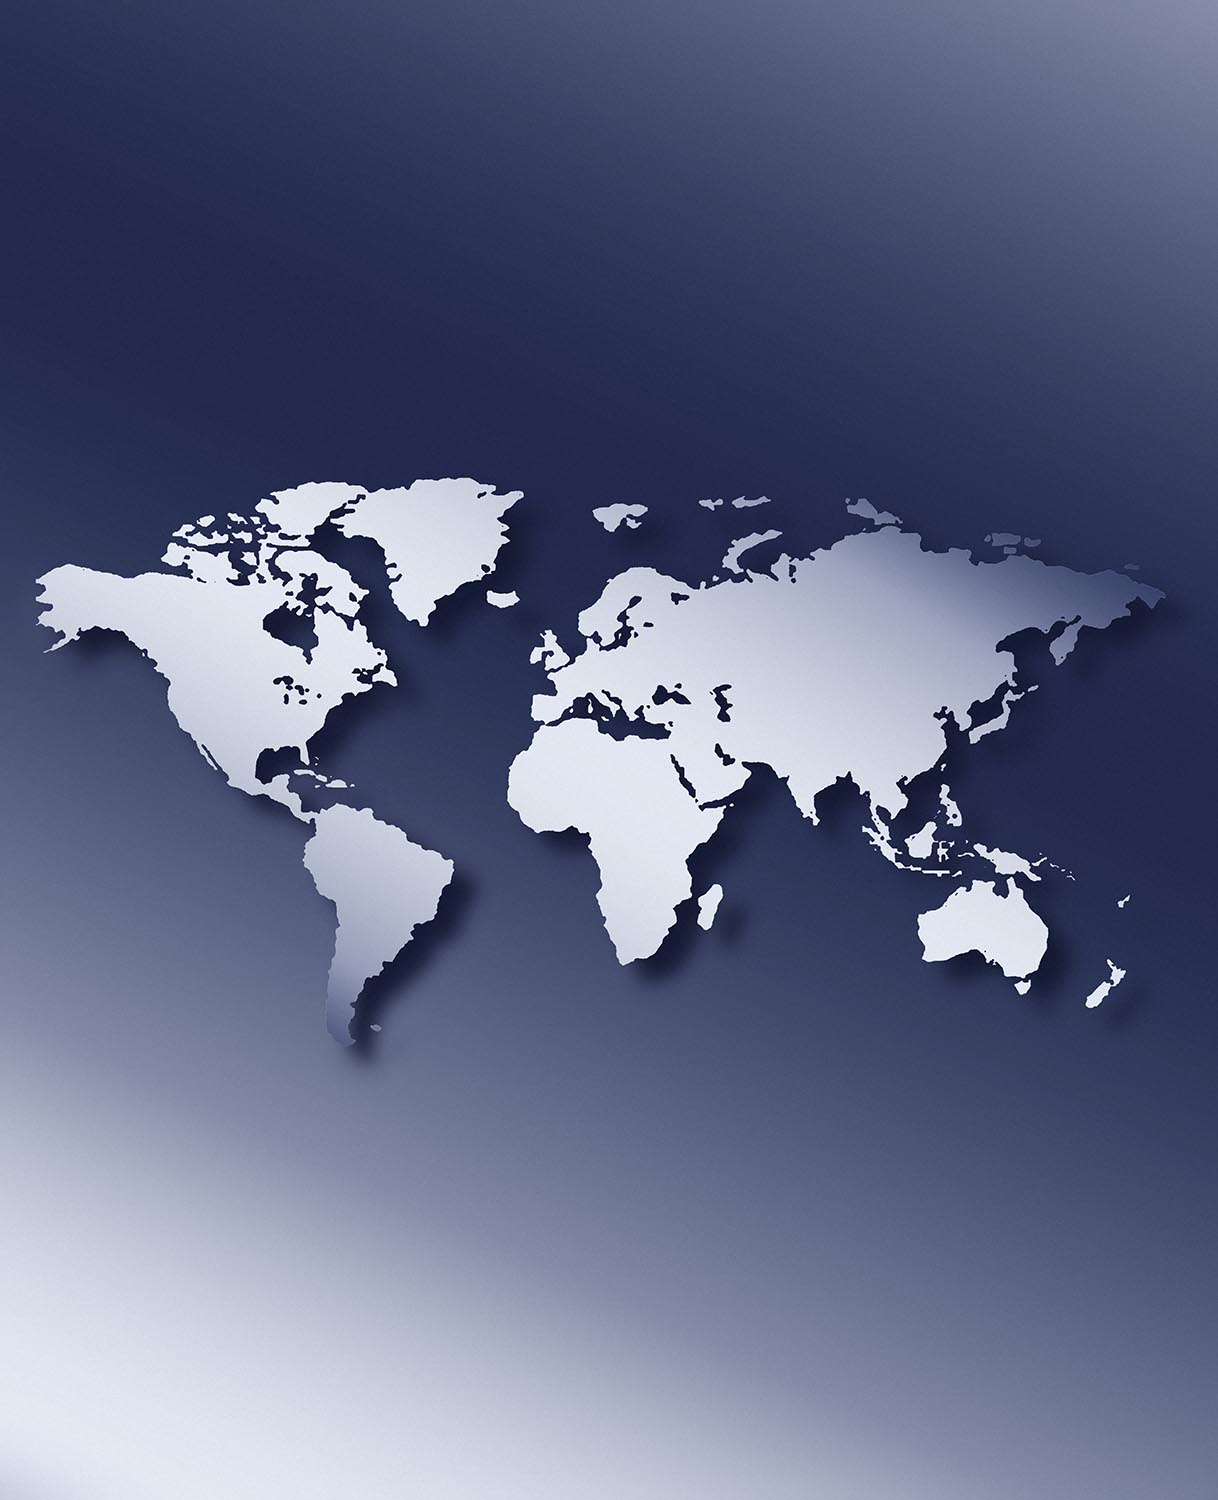 Free stock photo Graphic map of the world